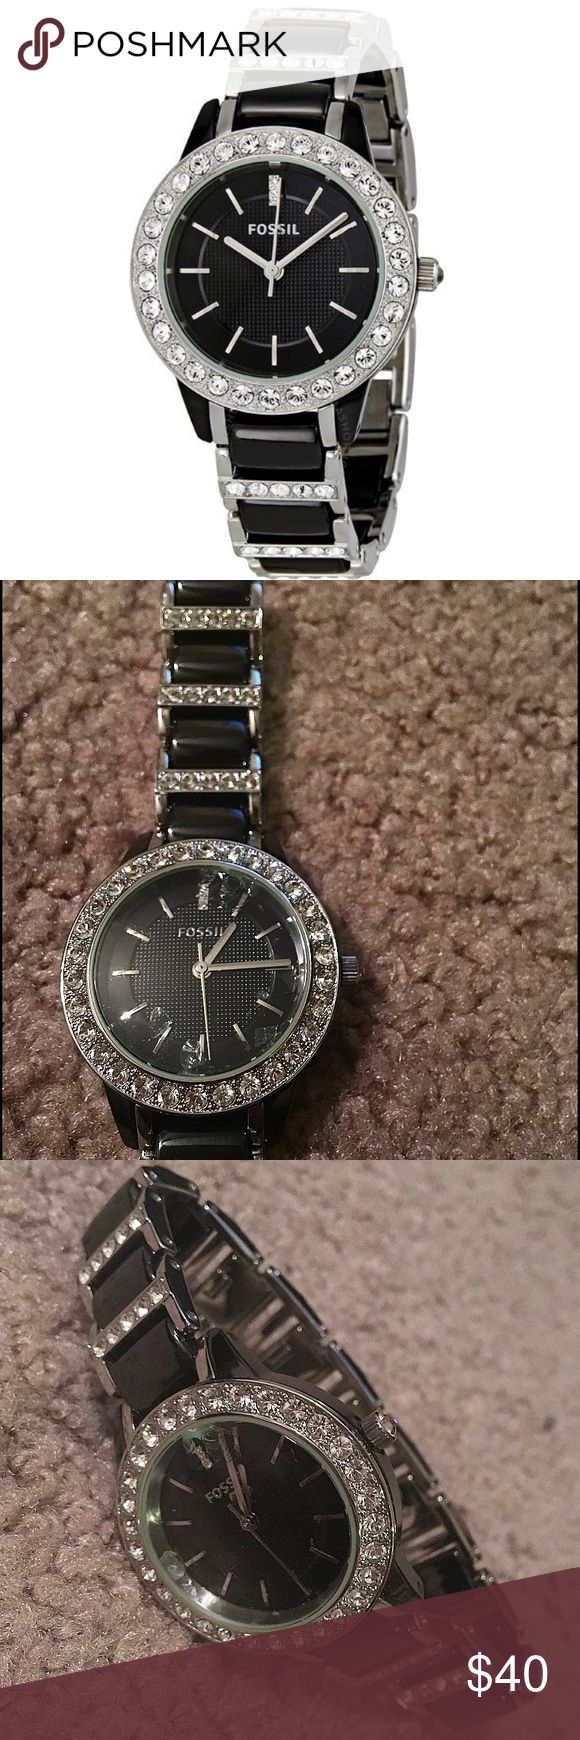 Stainless Steel and Ceramic FOSSIL Watch Women's FOSSIL two-tone Stainless Steel and black Ceramic watch with link band. Swarovski crystals around the bezel and on band. Watch is in good condition but crystal is cracked with loose pieces floating in face. Can be repaired by Fossil and have crystal replaced. Authentic. No trades! Fossil Accessories Watches